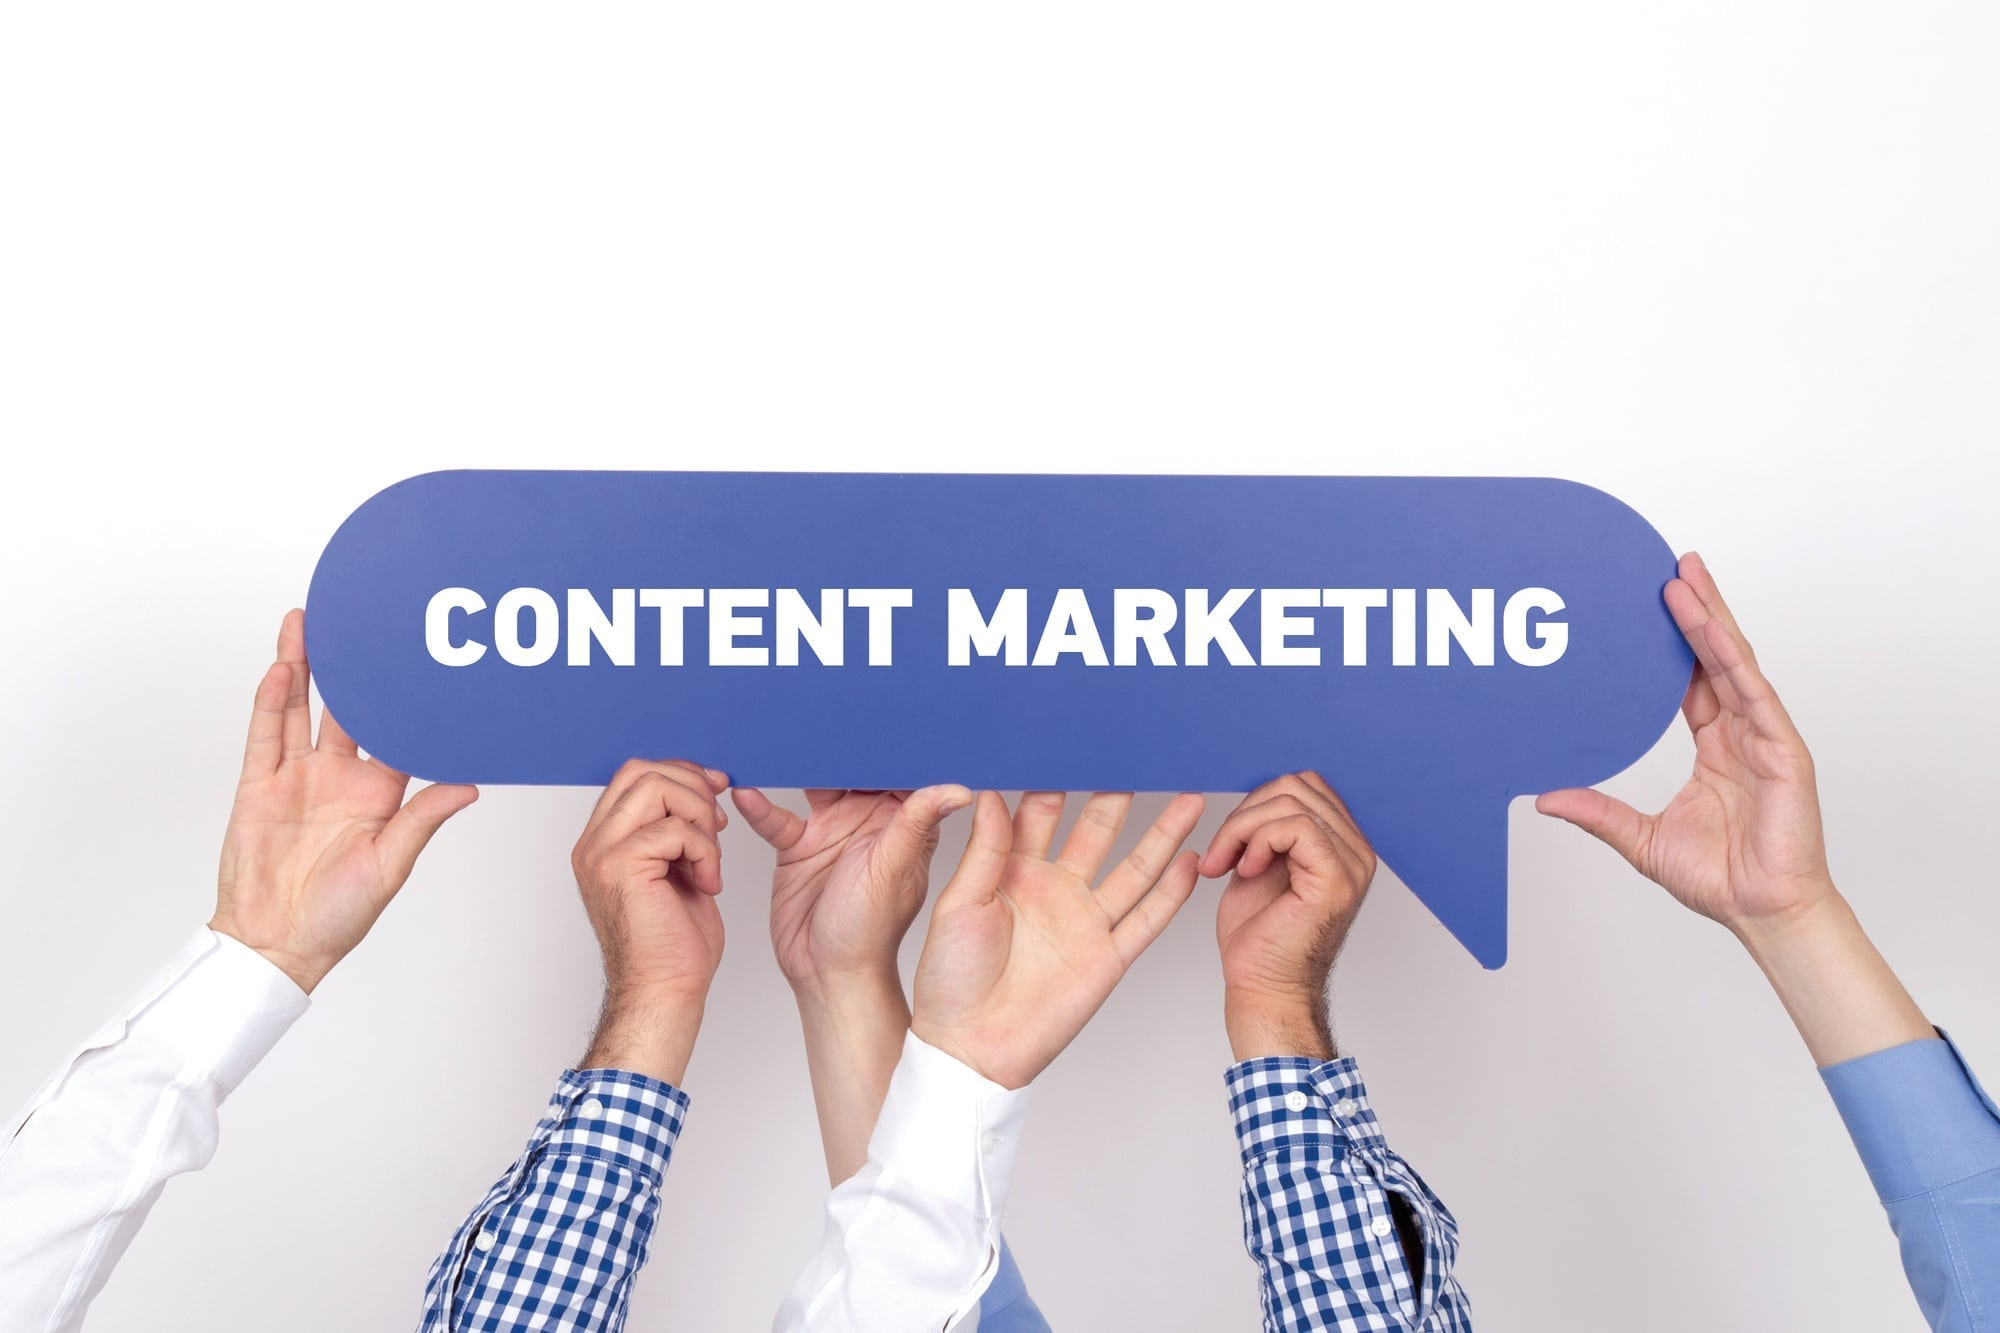 Group of people holding the CONTENT MARKETING written speech bubble